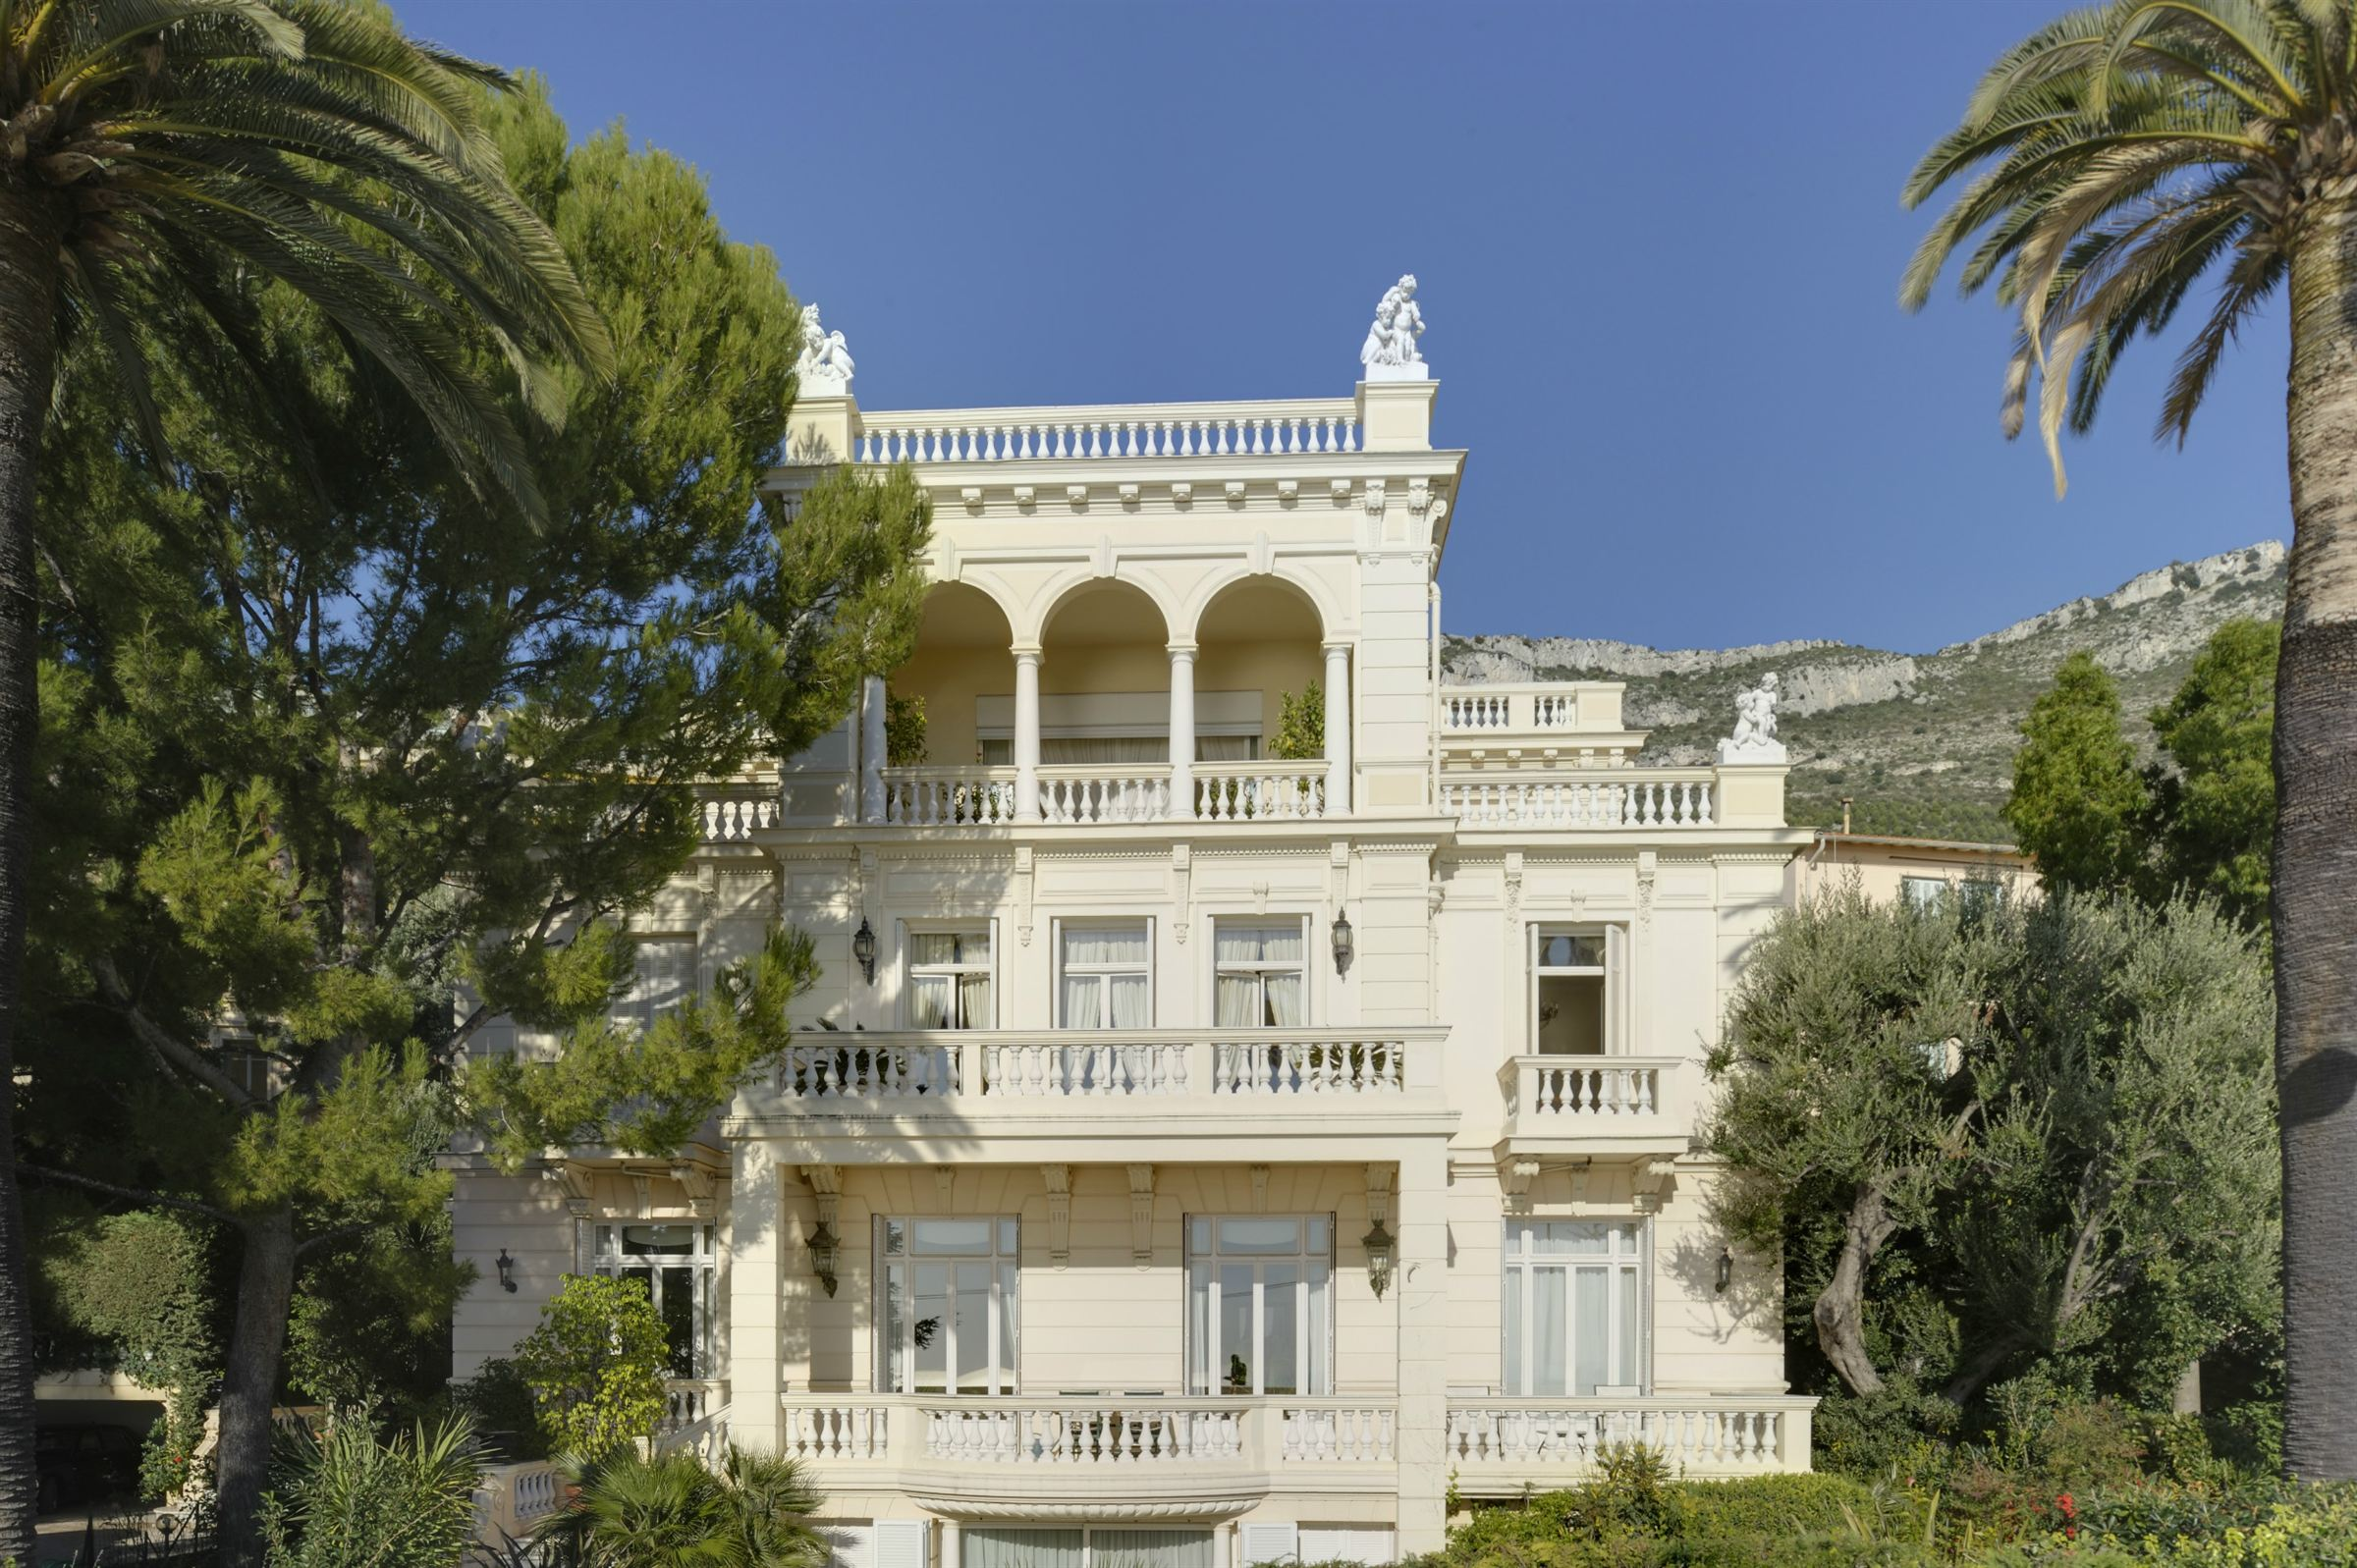 公寓 為 出售 在 Luxury apartmentvilla at a walking distance to the sea Other Provence-Alpes-Cote D'Azur, 普羅旺斯阿爾卑斯藍色海岸, 06320 法國